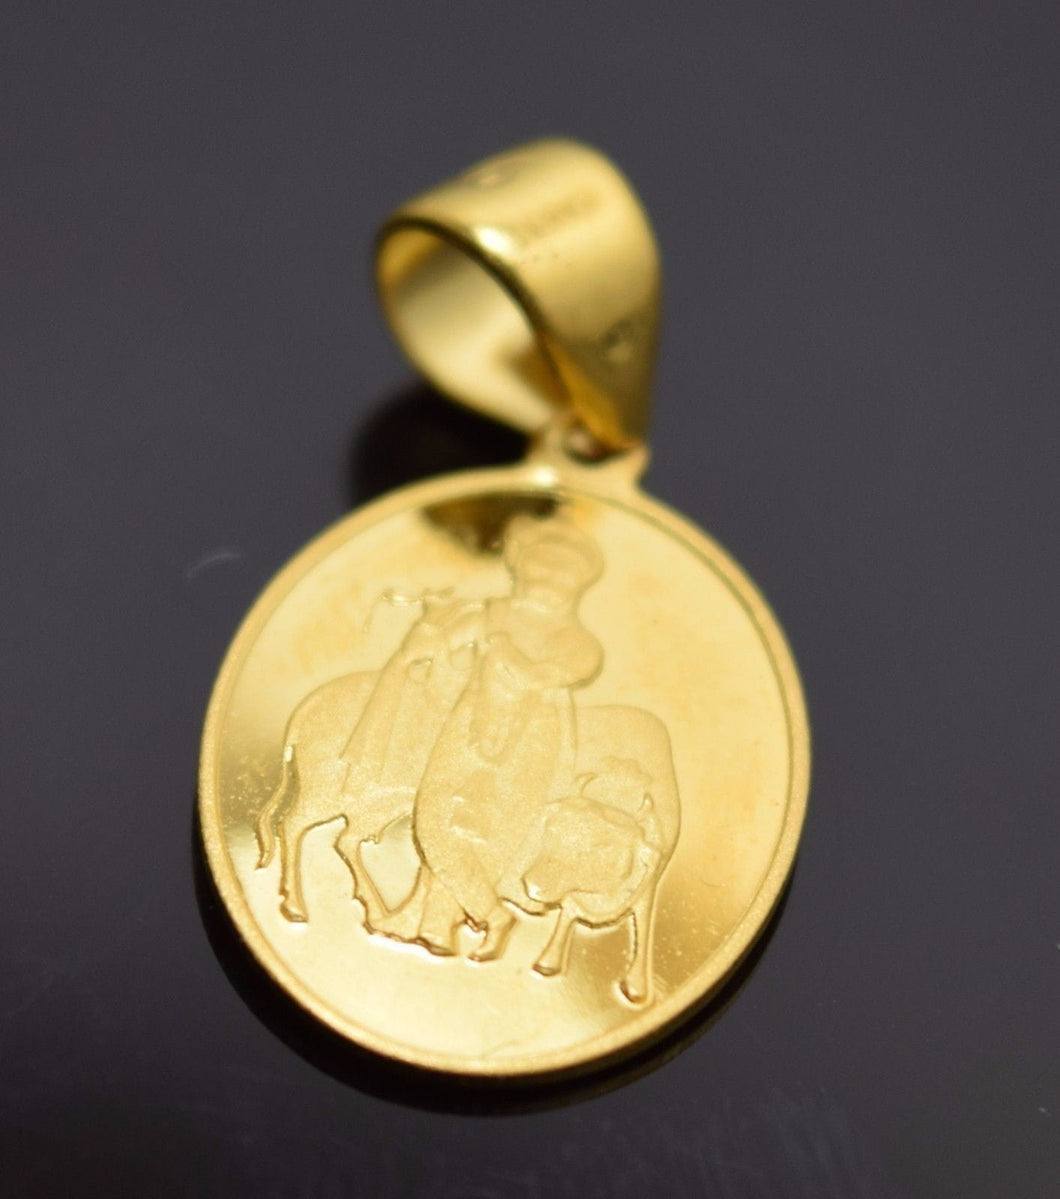 22k Solid Gold Lord Krishna krishan gopal OM OHM pendant locket charm P186 | Royal Dubai Jewellers